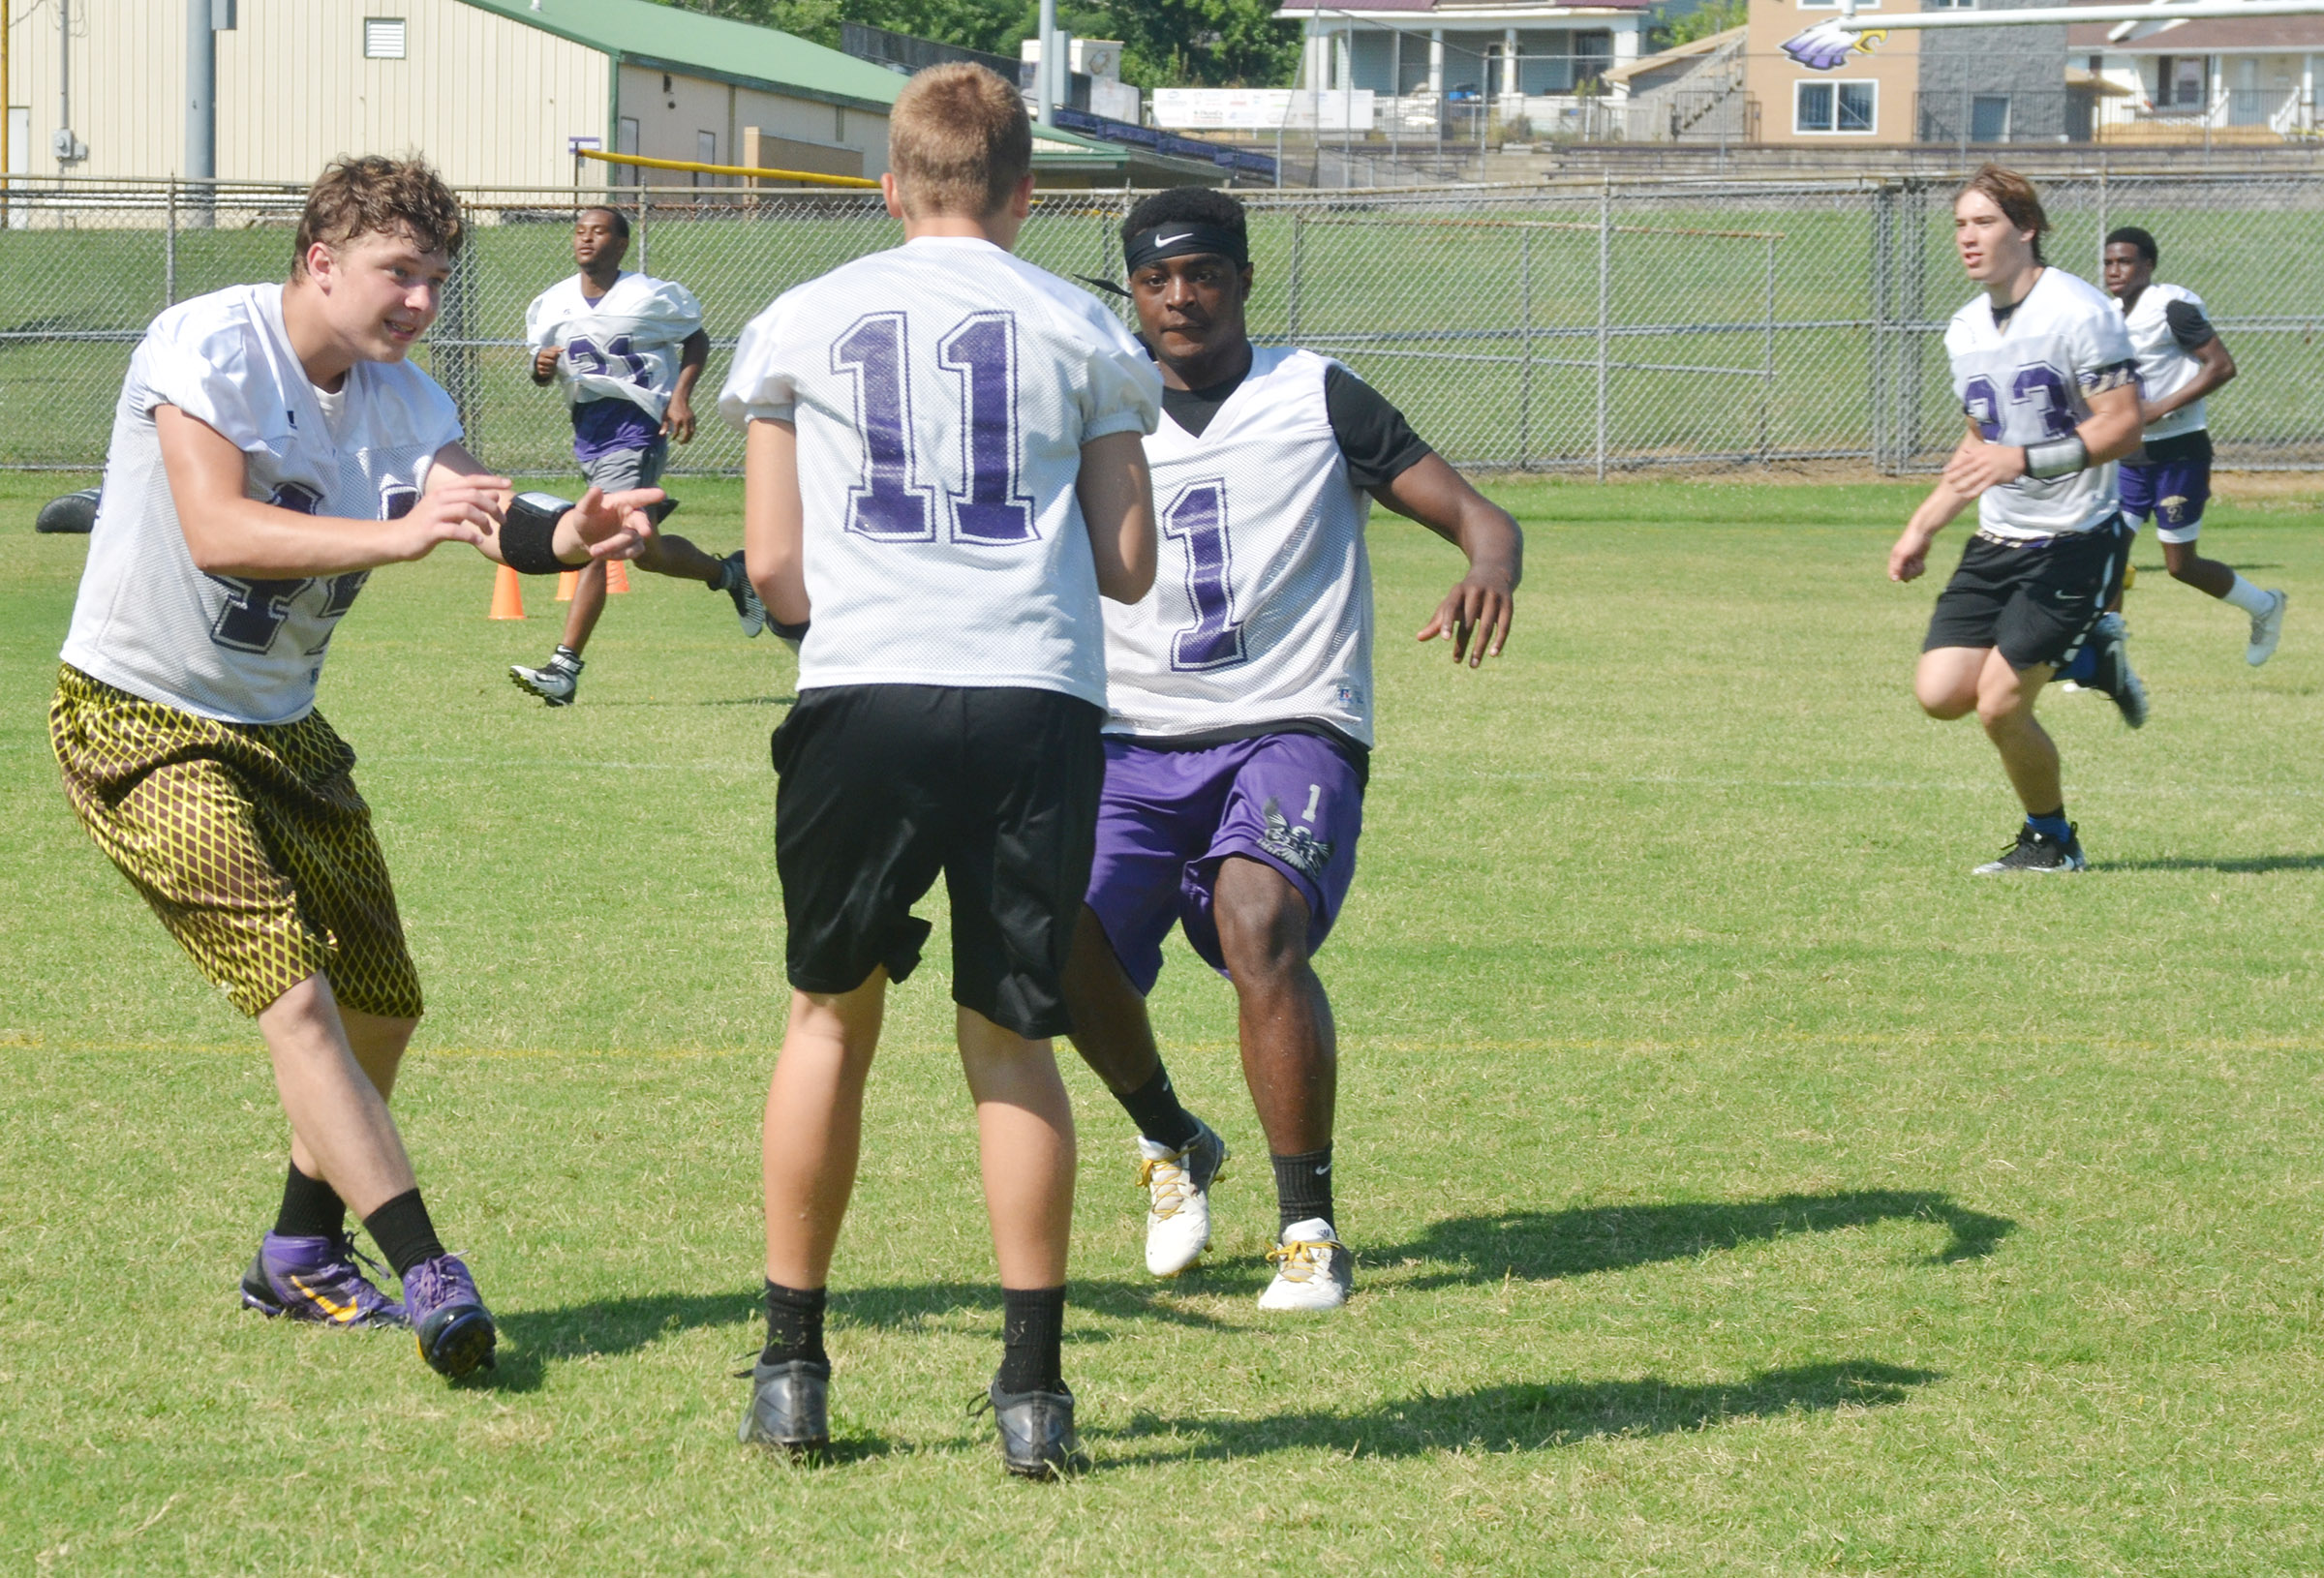 CHS sophomore Devon Reardon, at left, and junior Charlie Pettigrew tackle sophomore Tyler Gribbins as he runs the ball.